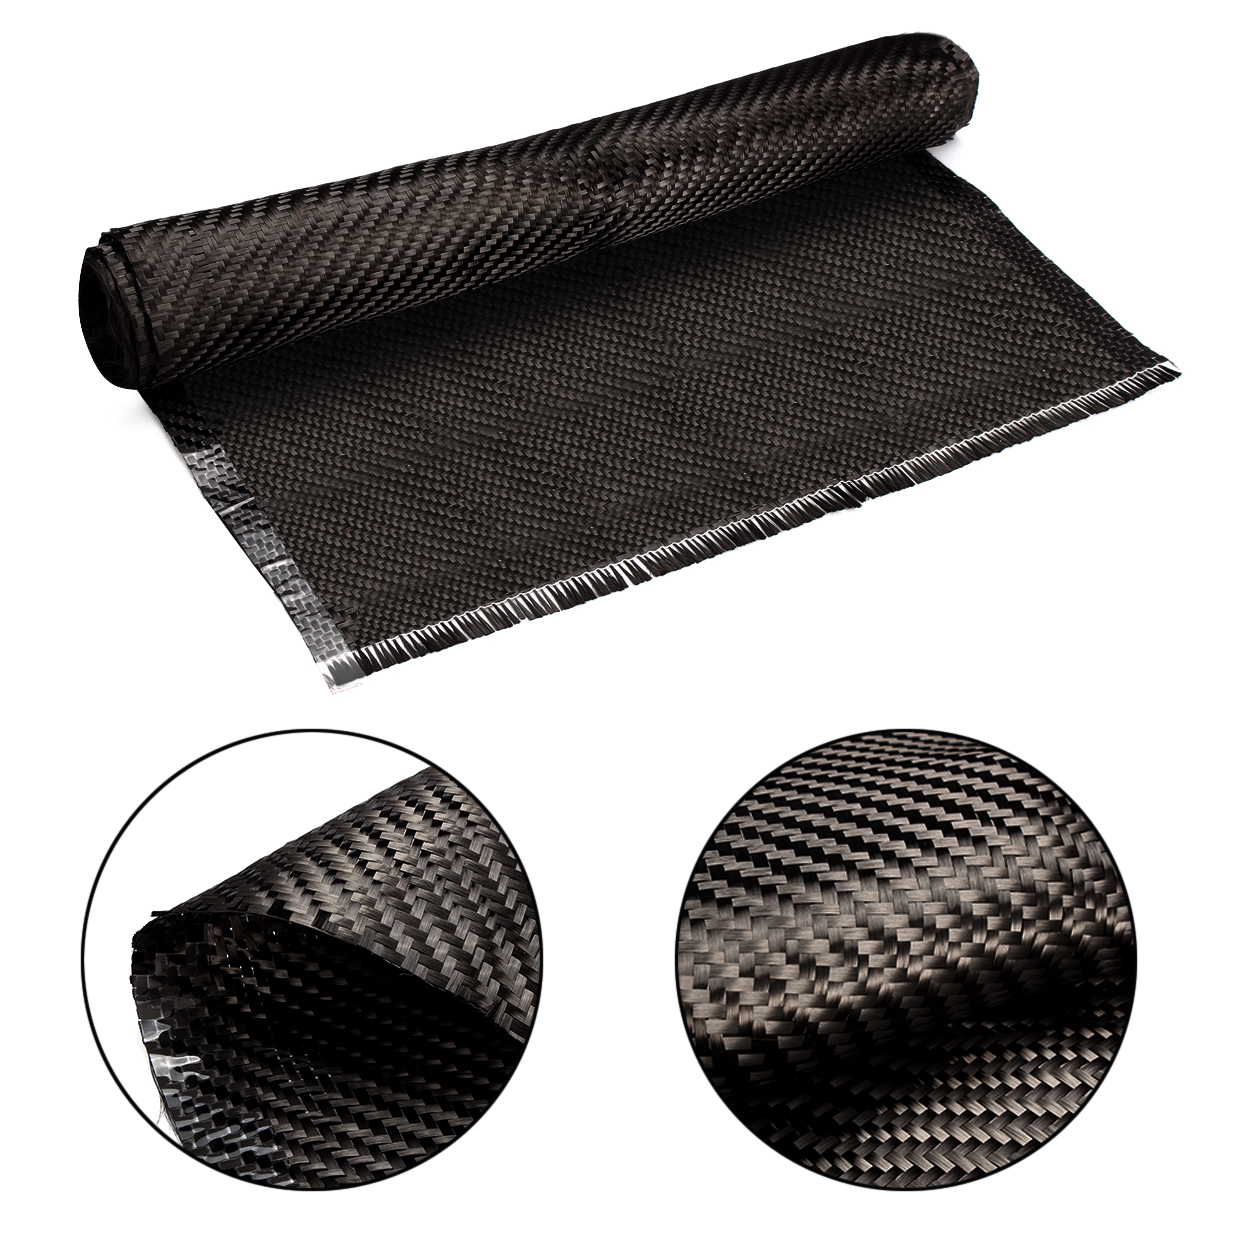 Real Carbon Fiber Fabric 32/82cm width 3K 5.9oz / 200gsm 2x2 twill Carbon Fabric for Commercial Car Parts Sport Equipments